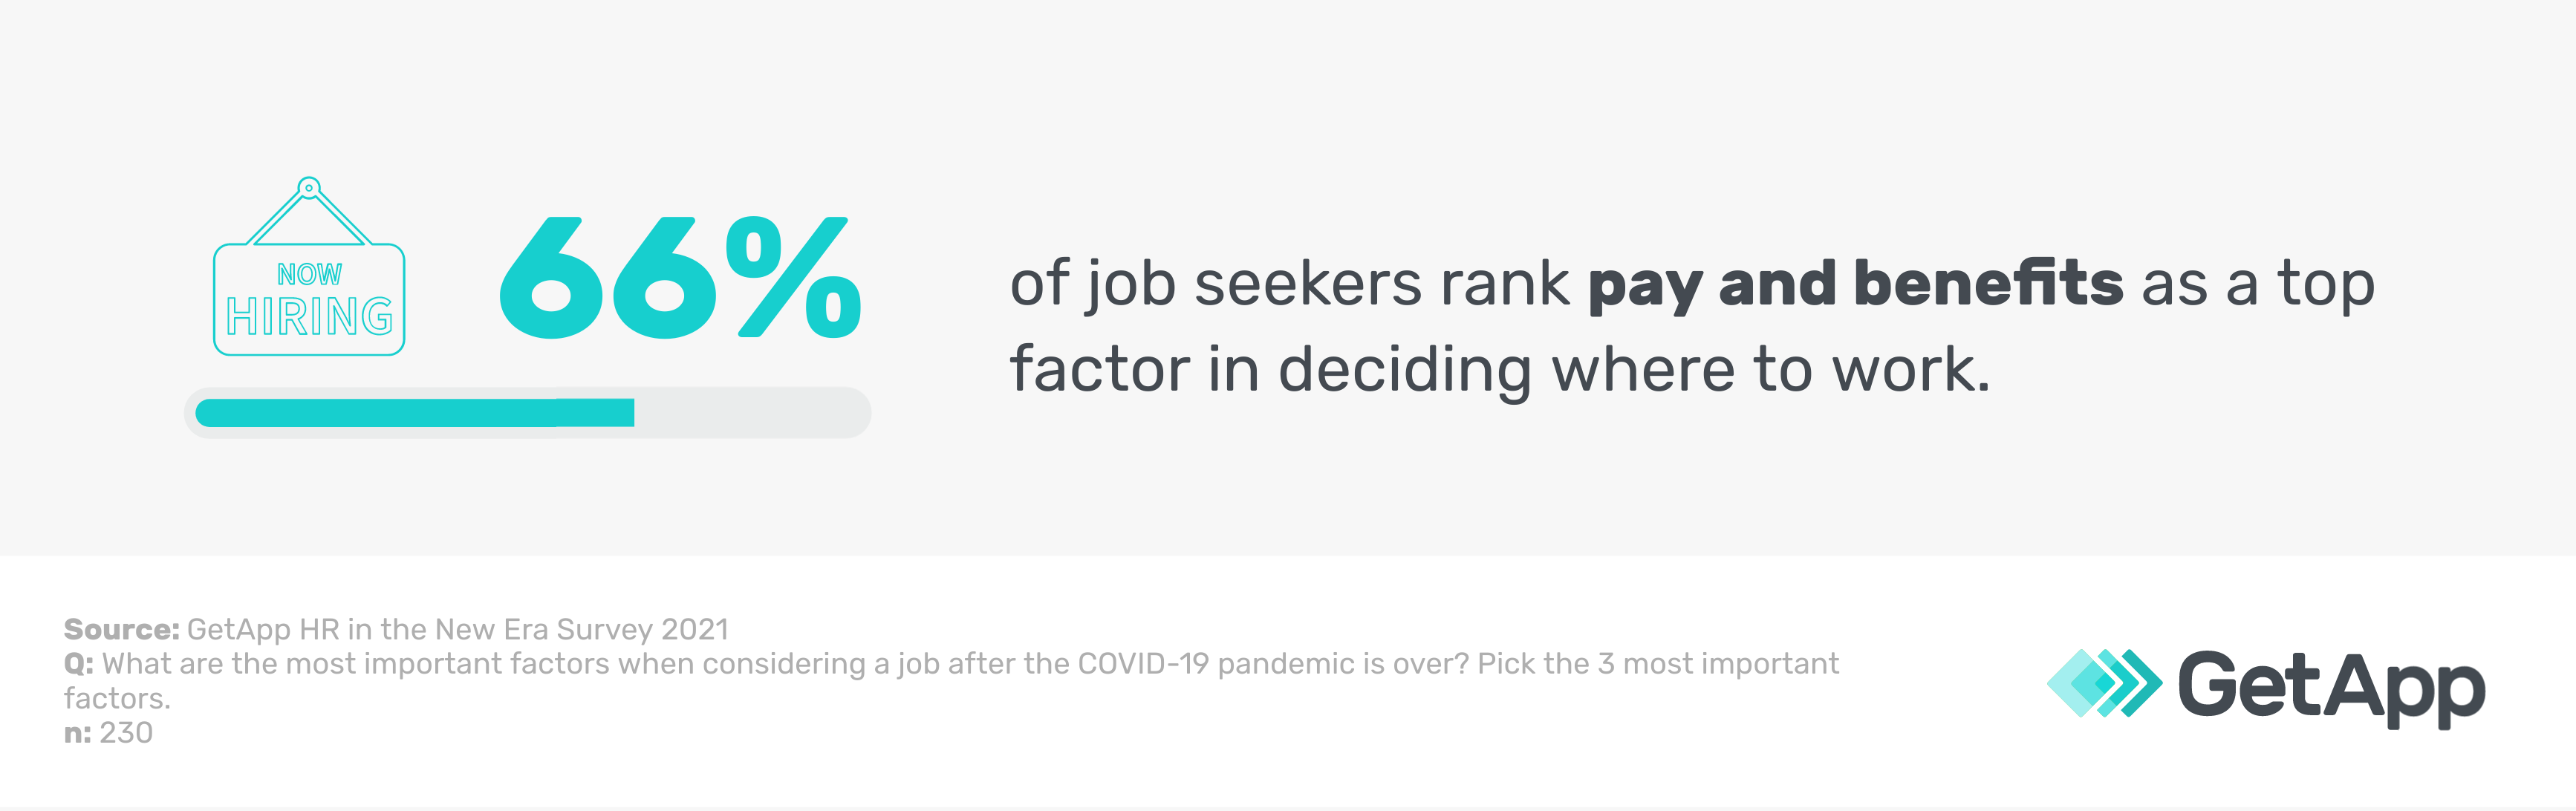 66% of job seekers rank pay and benefits as a top factor in deciding where to work